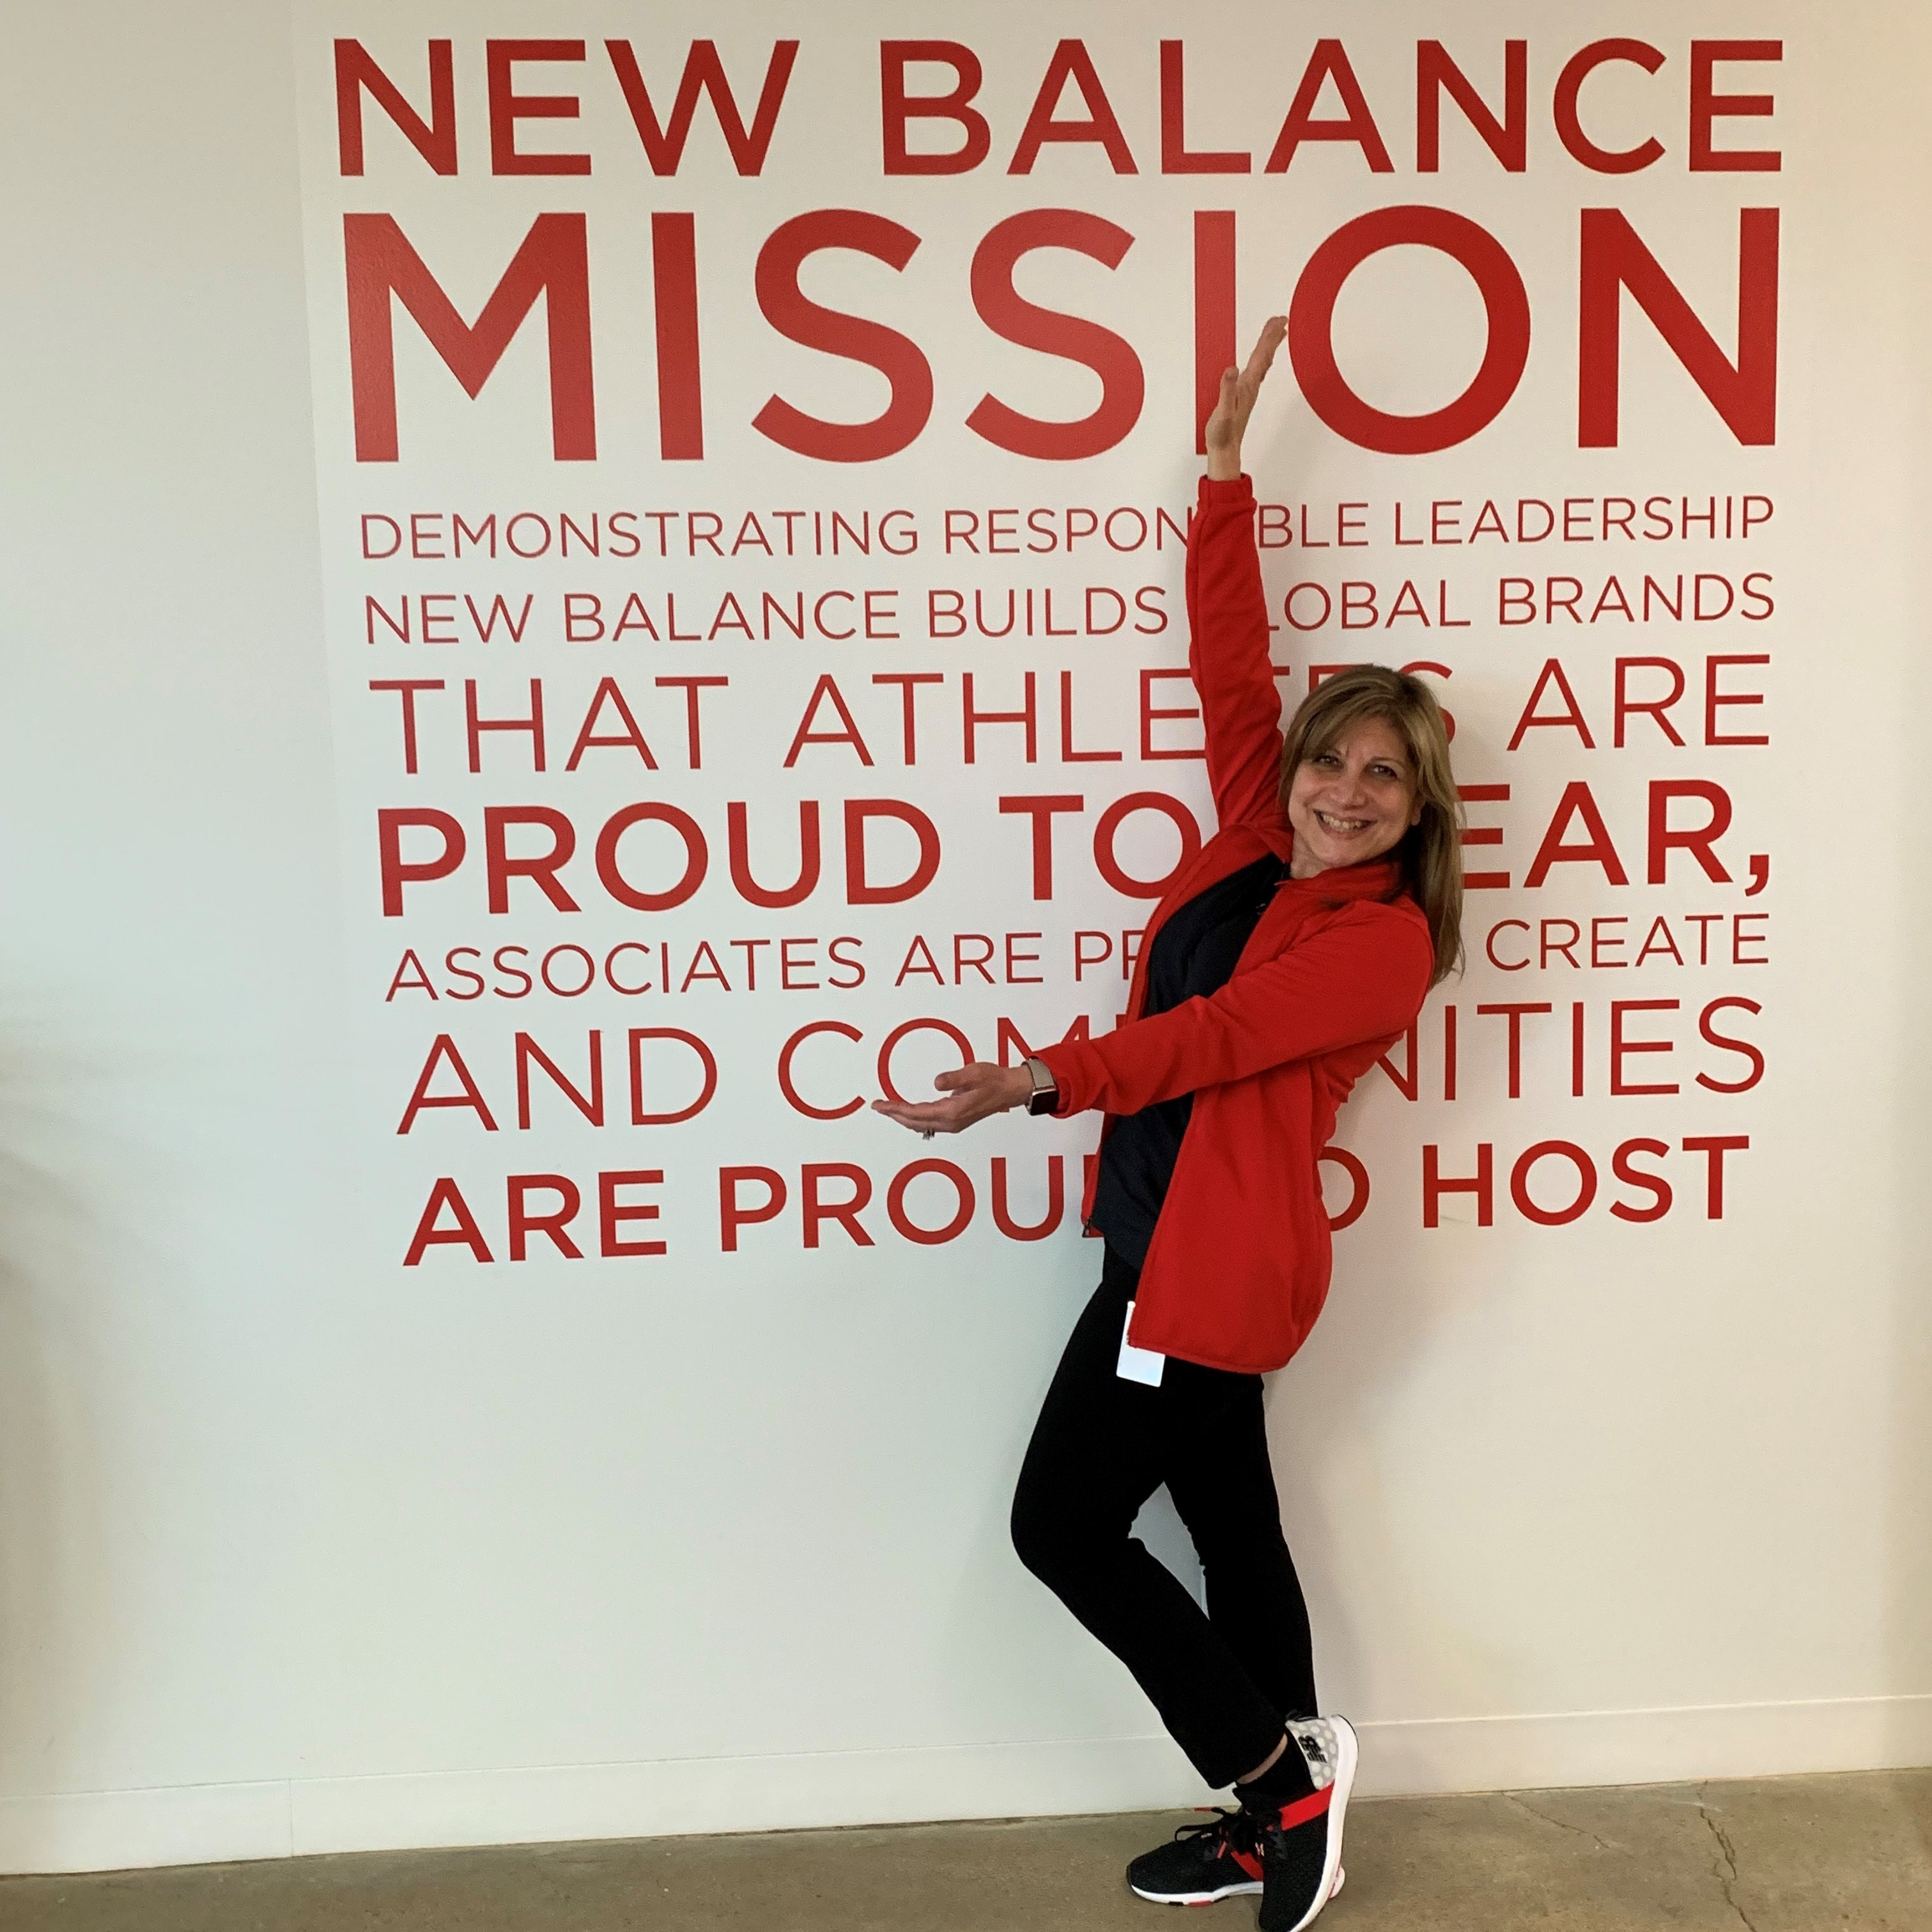 Corporate Careers | Jobs at New Balance